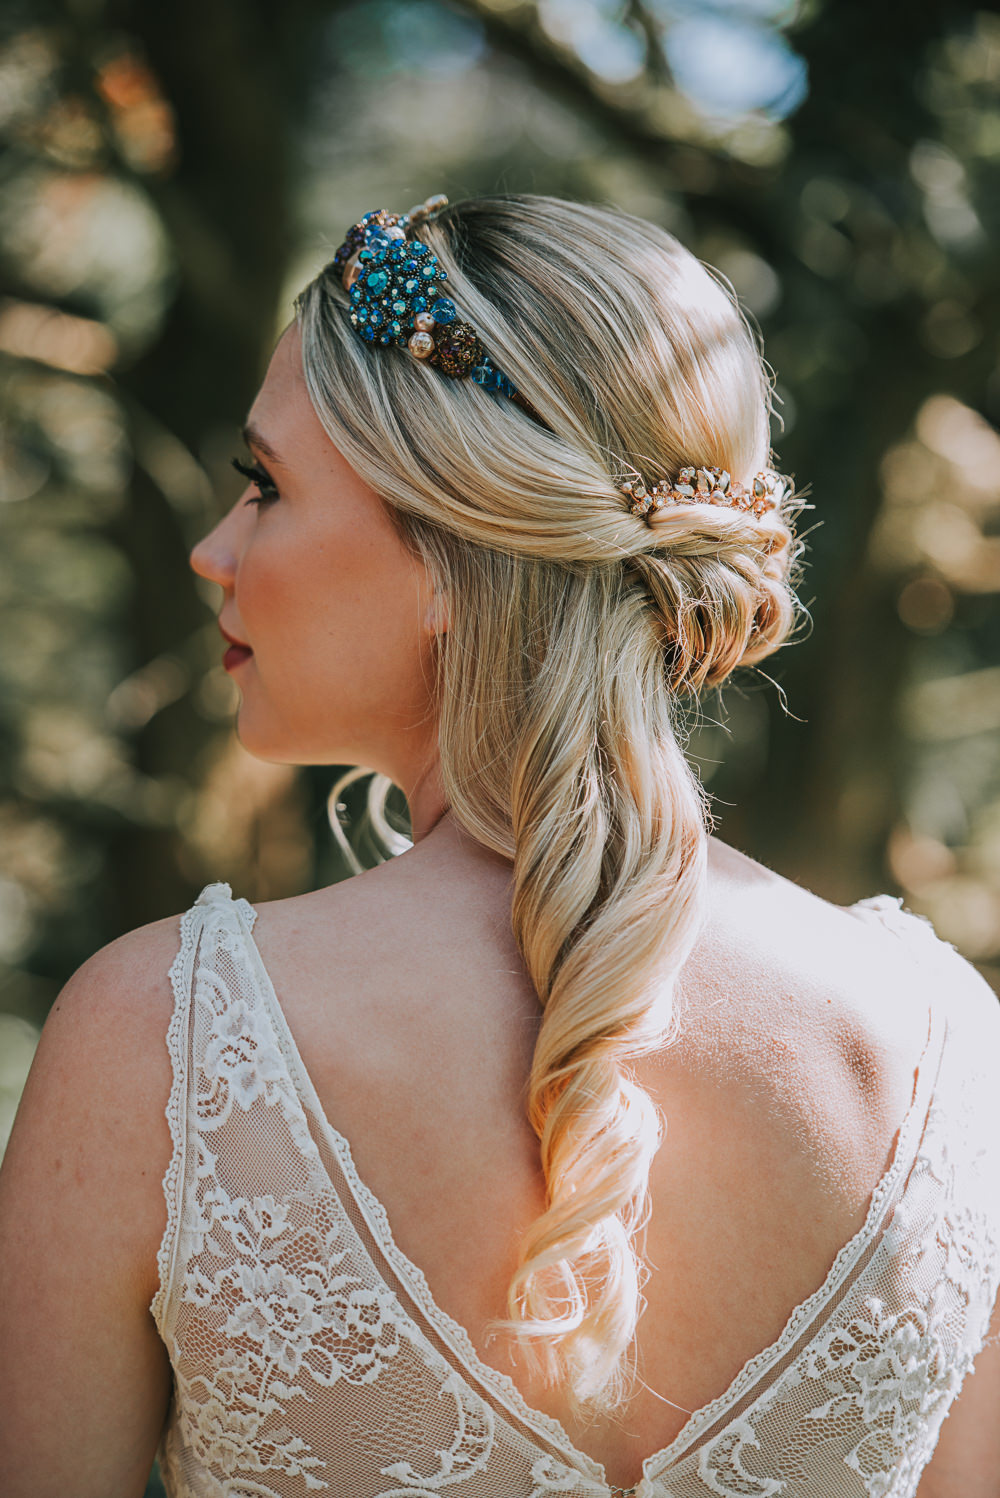 Crown Tiara Blue Jewels Half Up Do Hairstyle River Romance Wedding Ideas Mindy Coe Photography